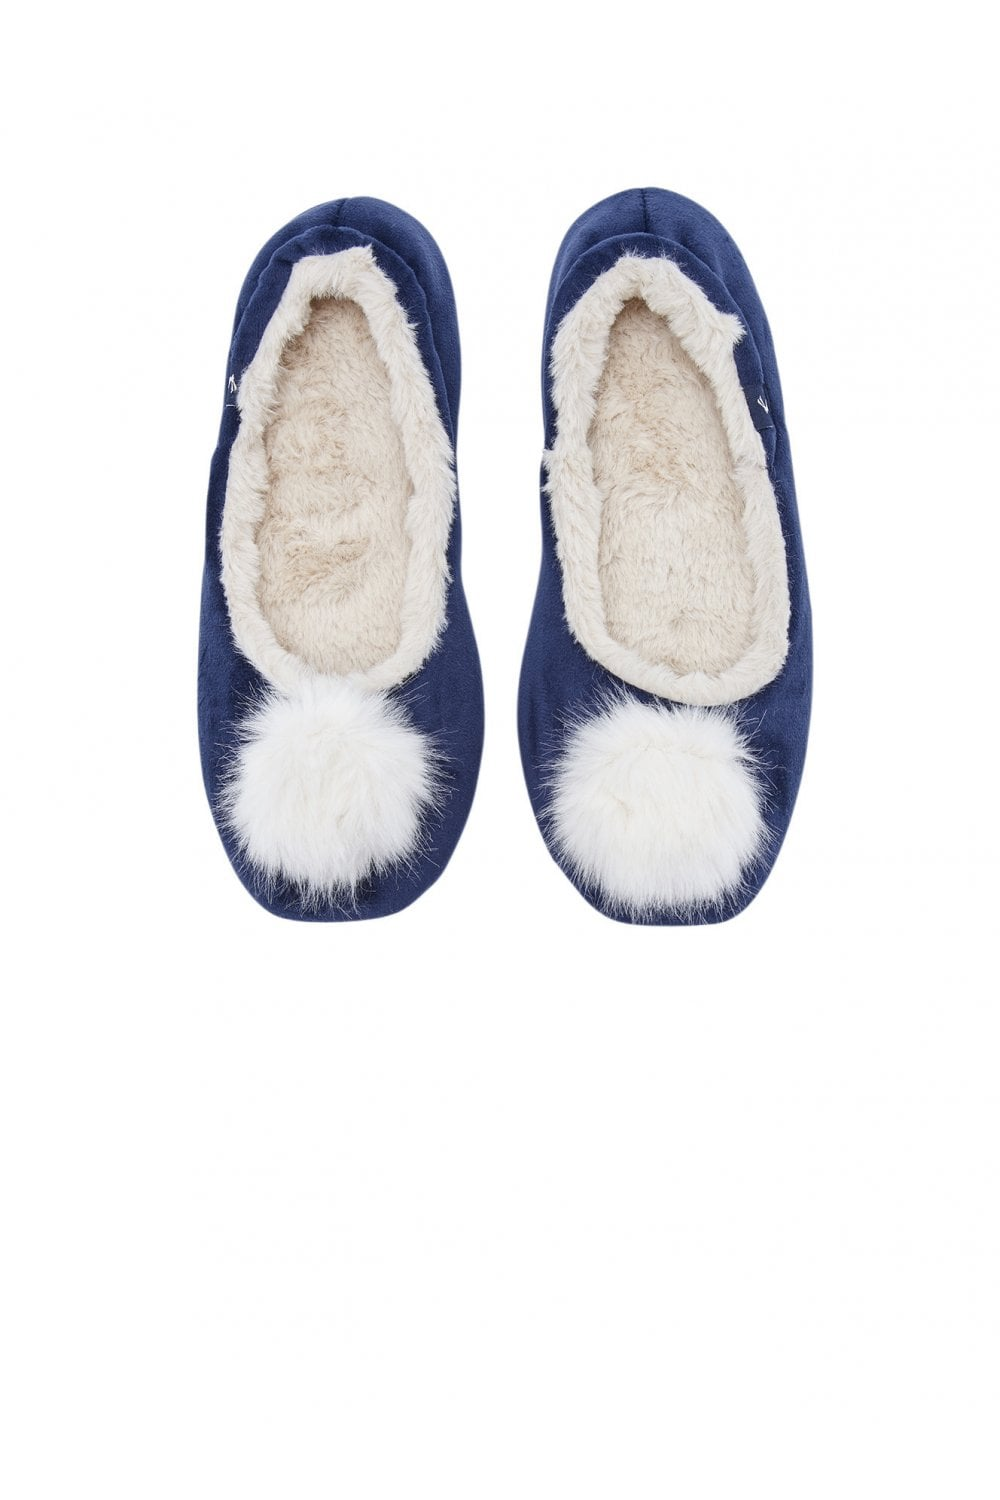 Joules Pombury Ballet Style Slippers